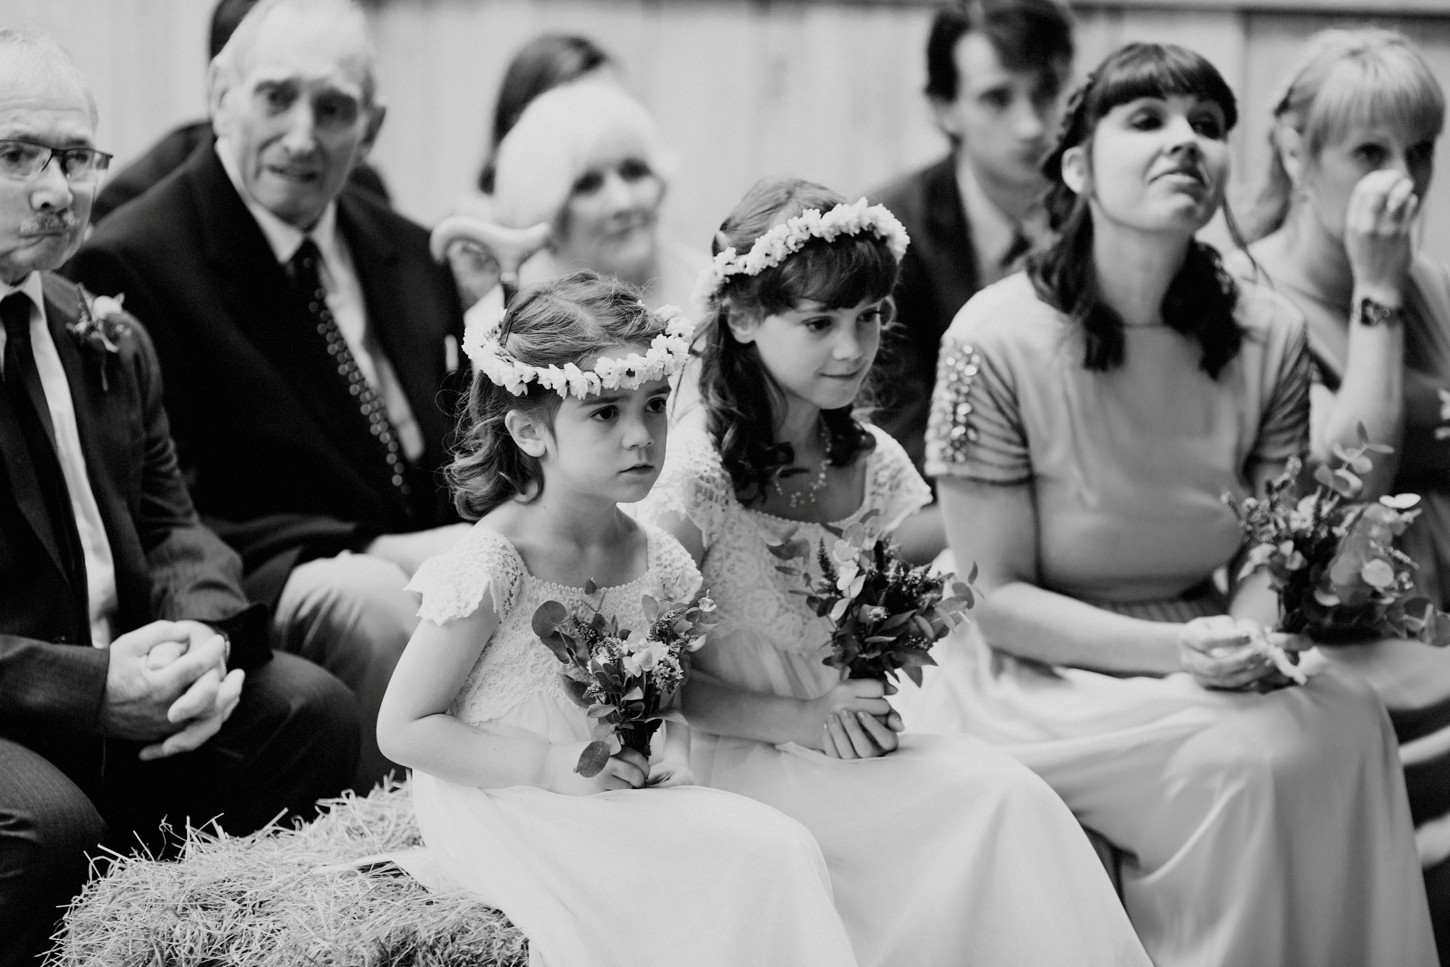 Dolau-Sheep-Farm-Wedding-Wales-United-Kingdom-025